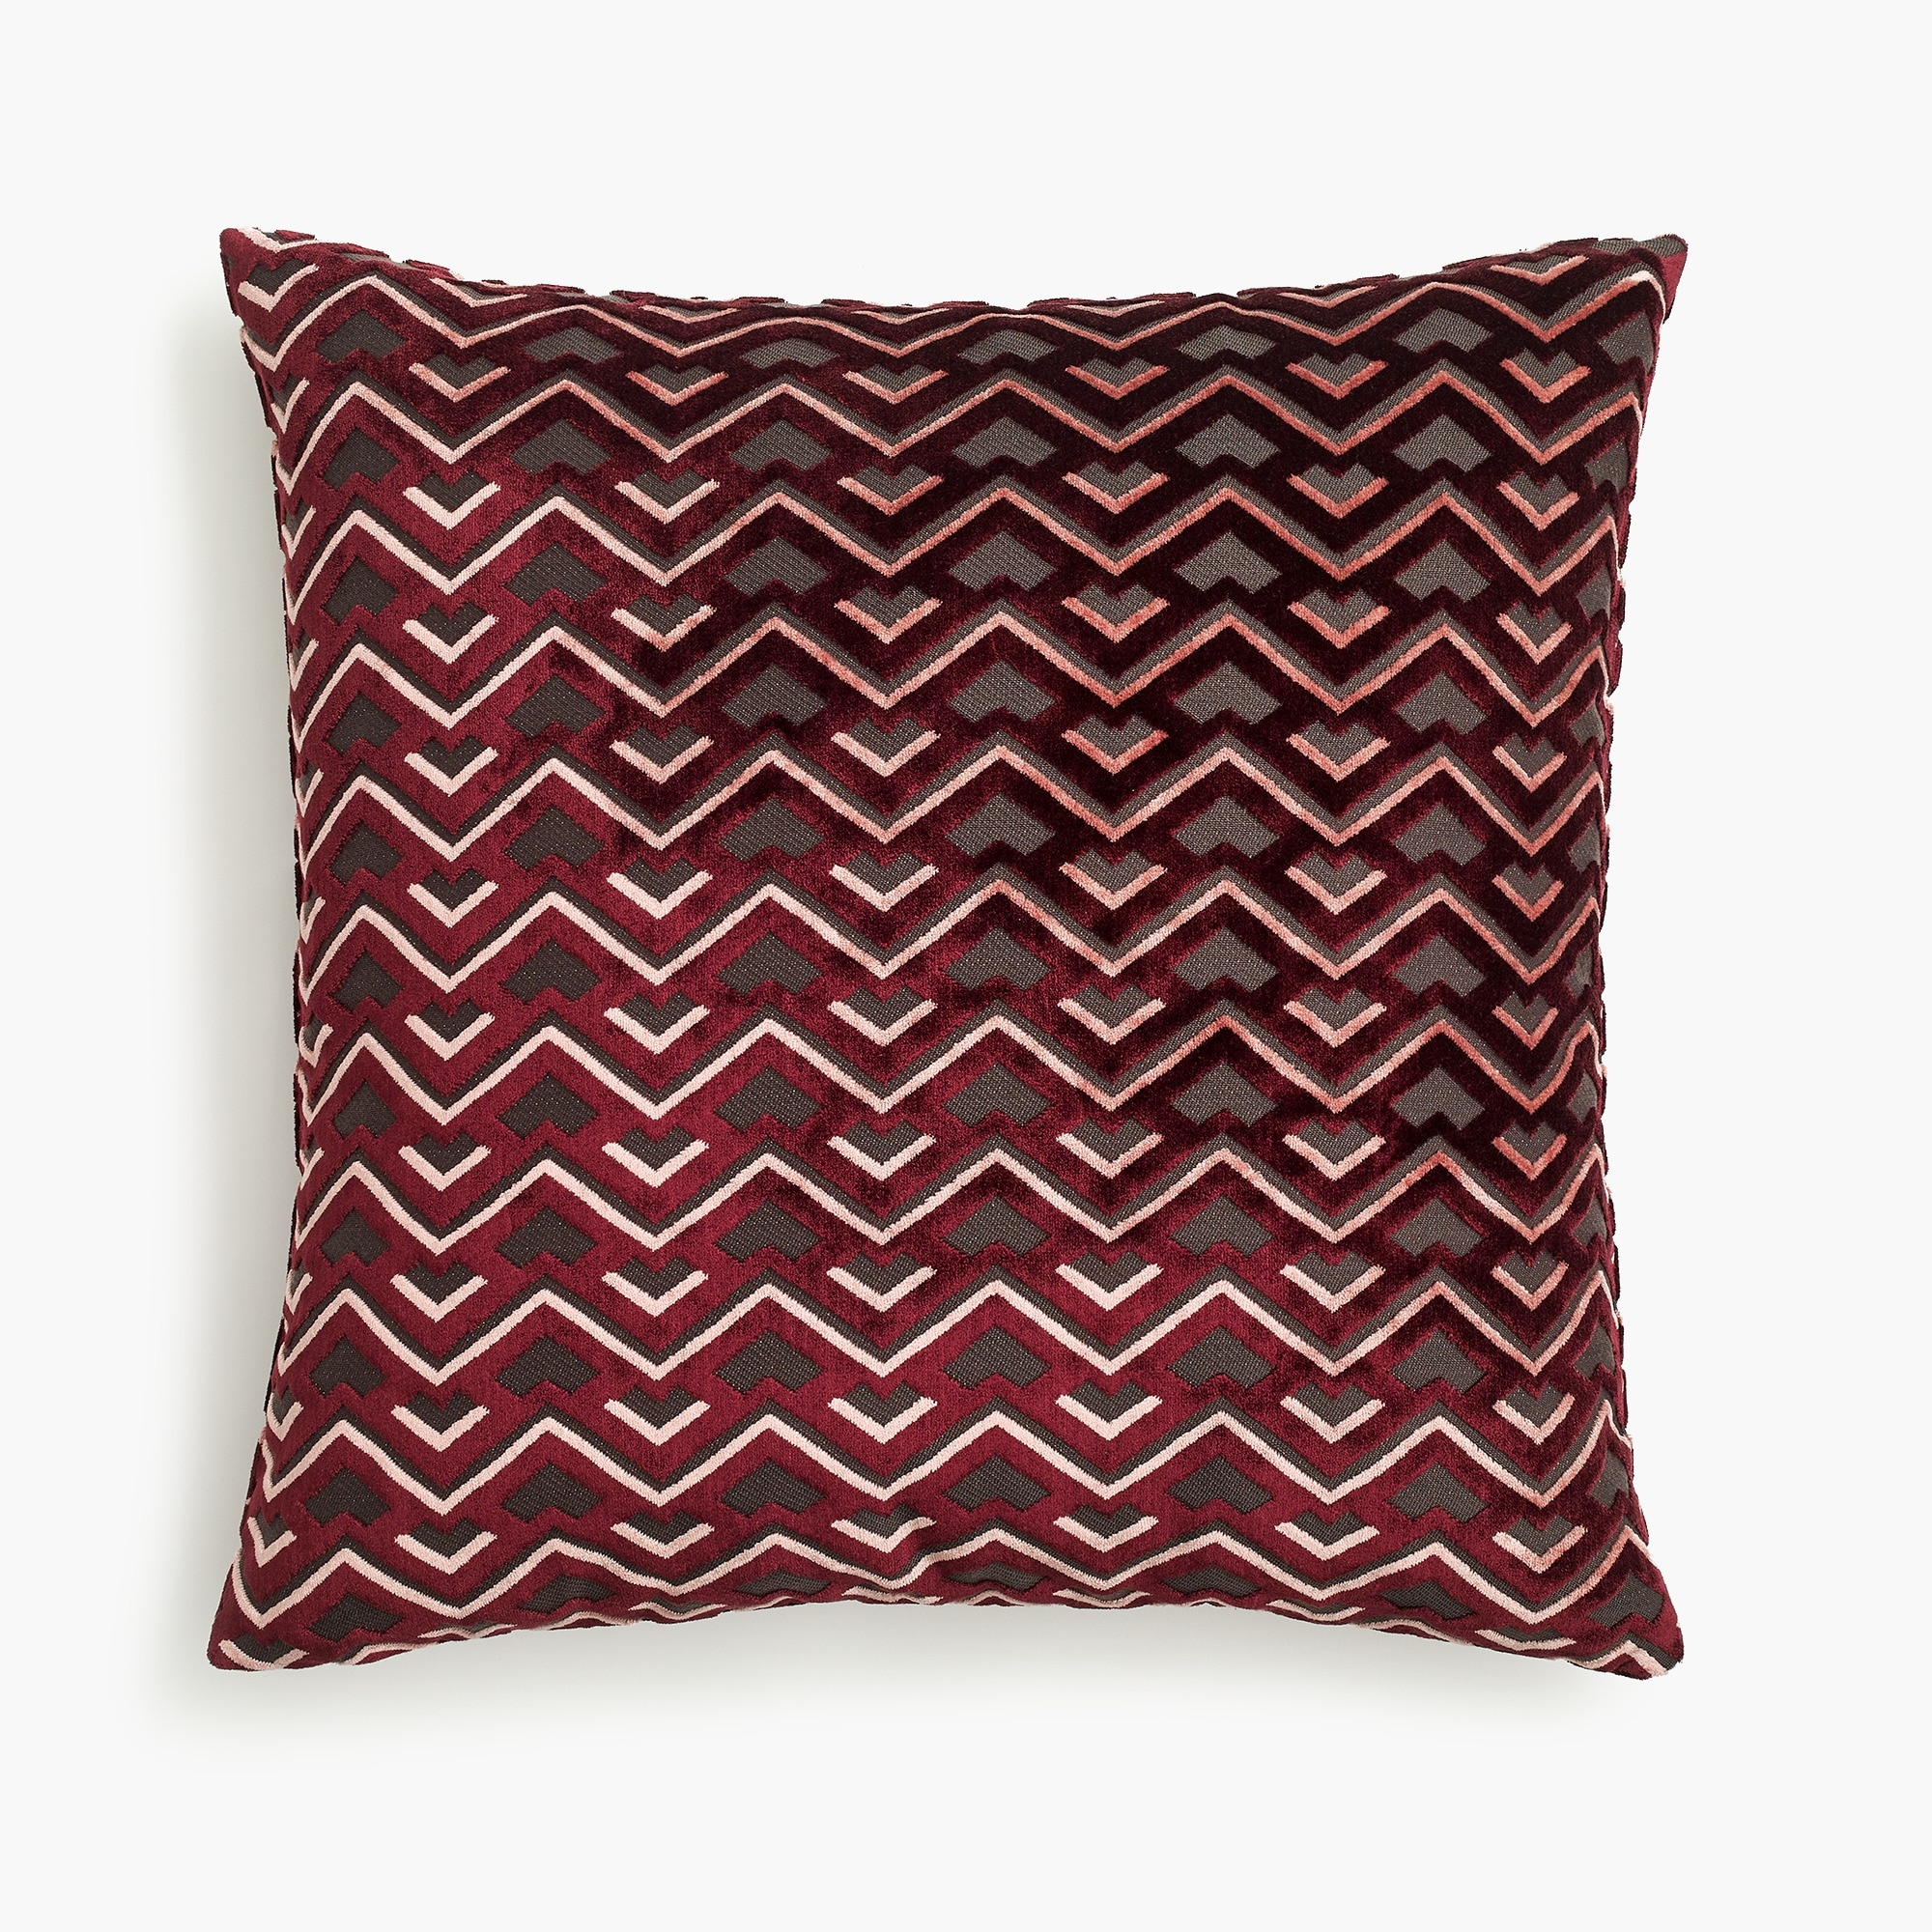 Compono velvet pillow in zigzag pattern